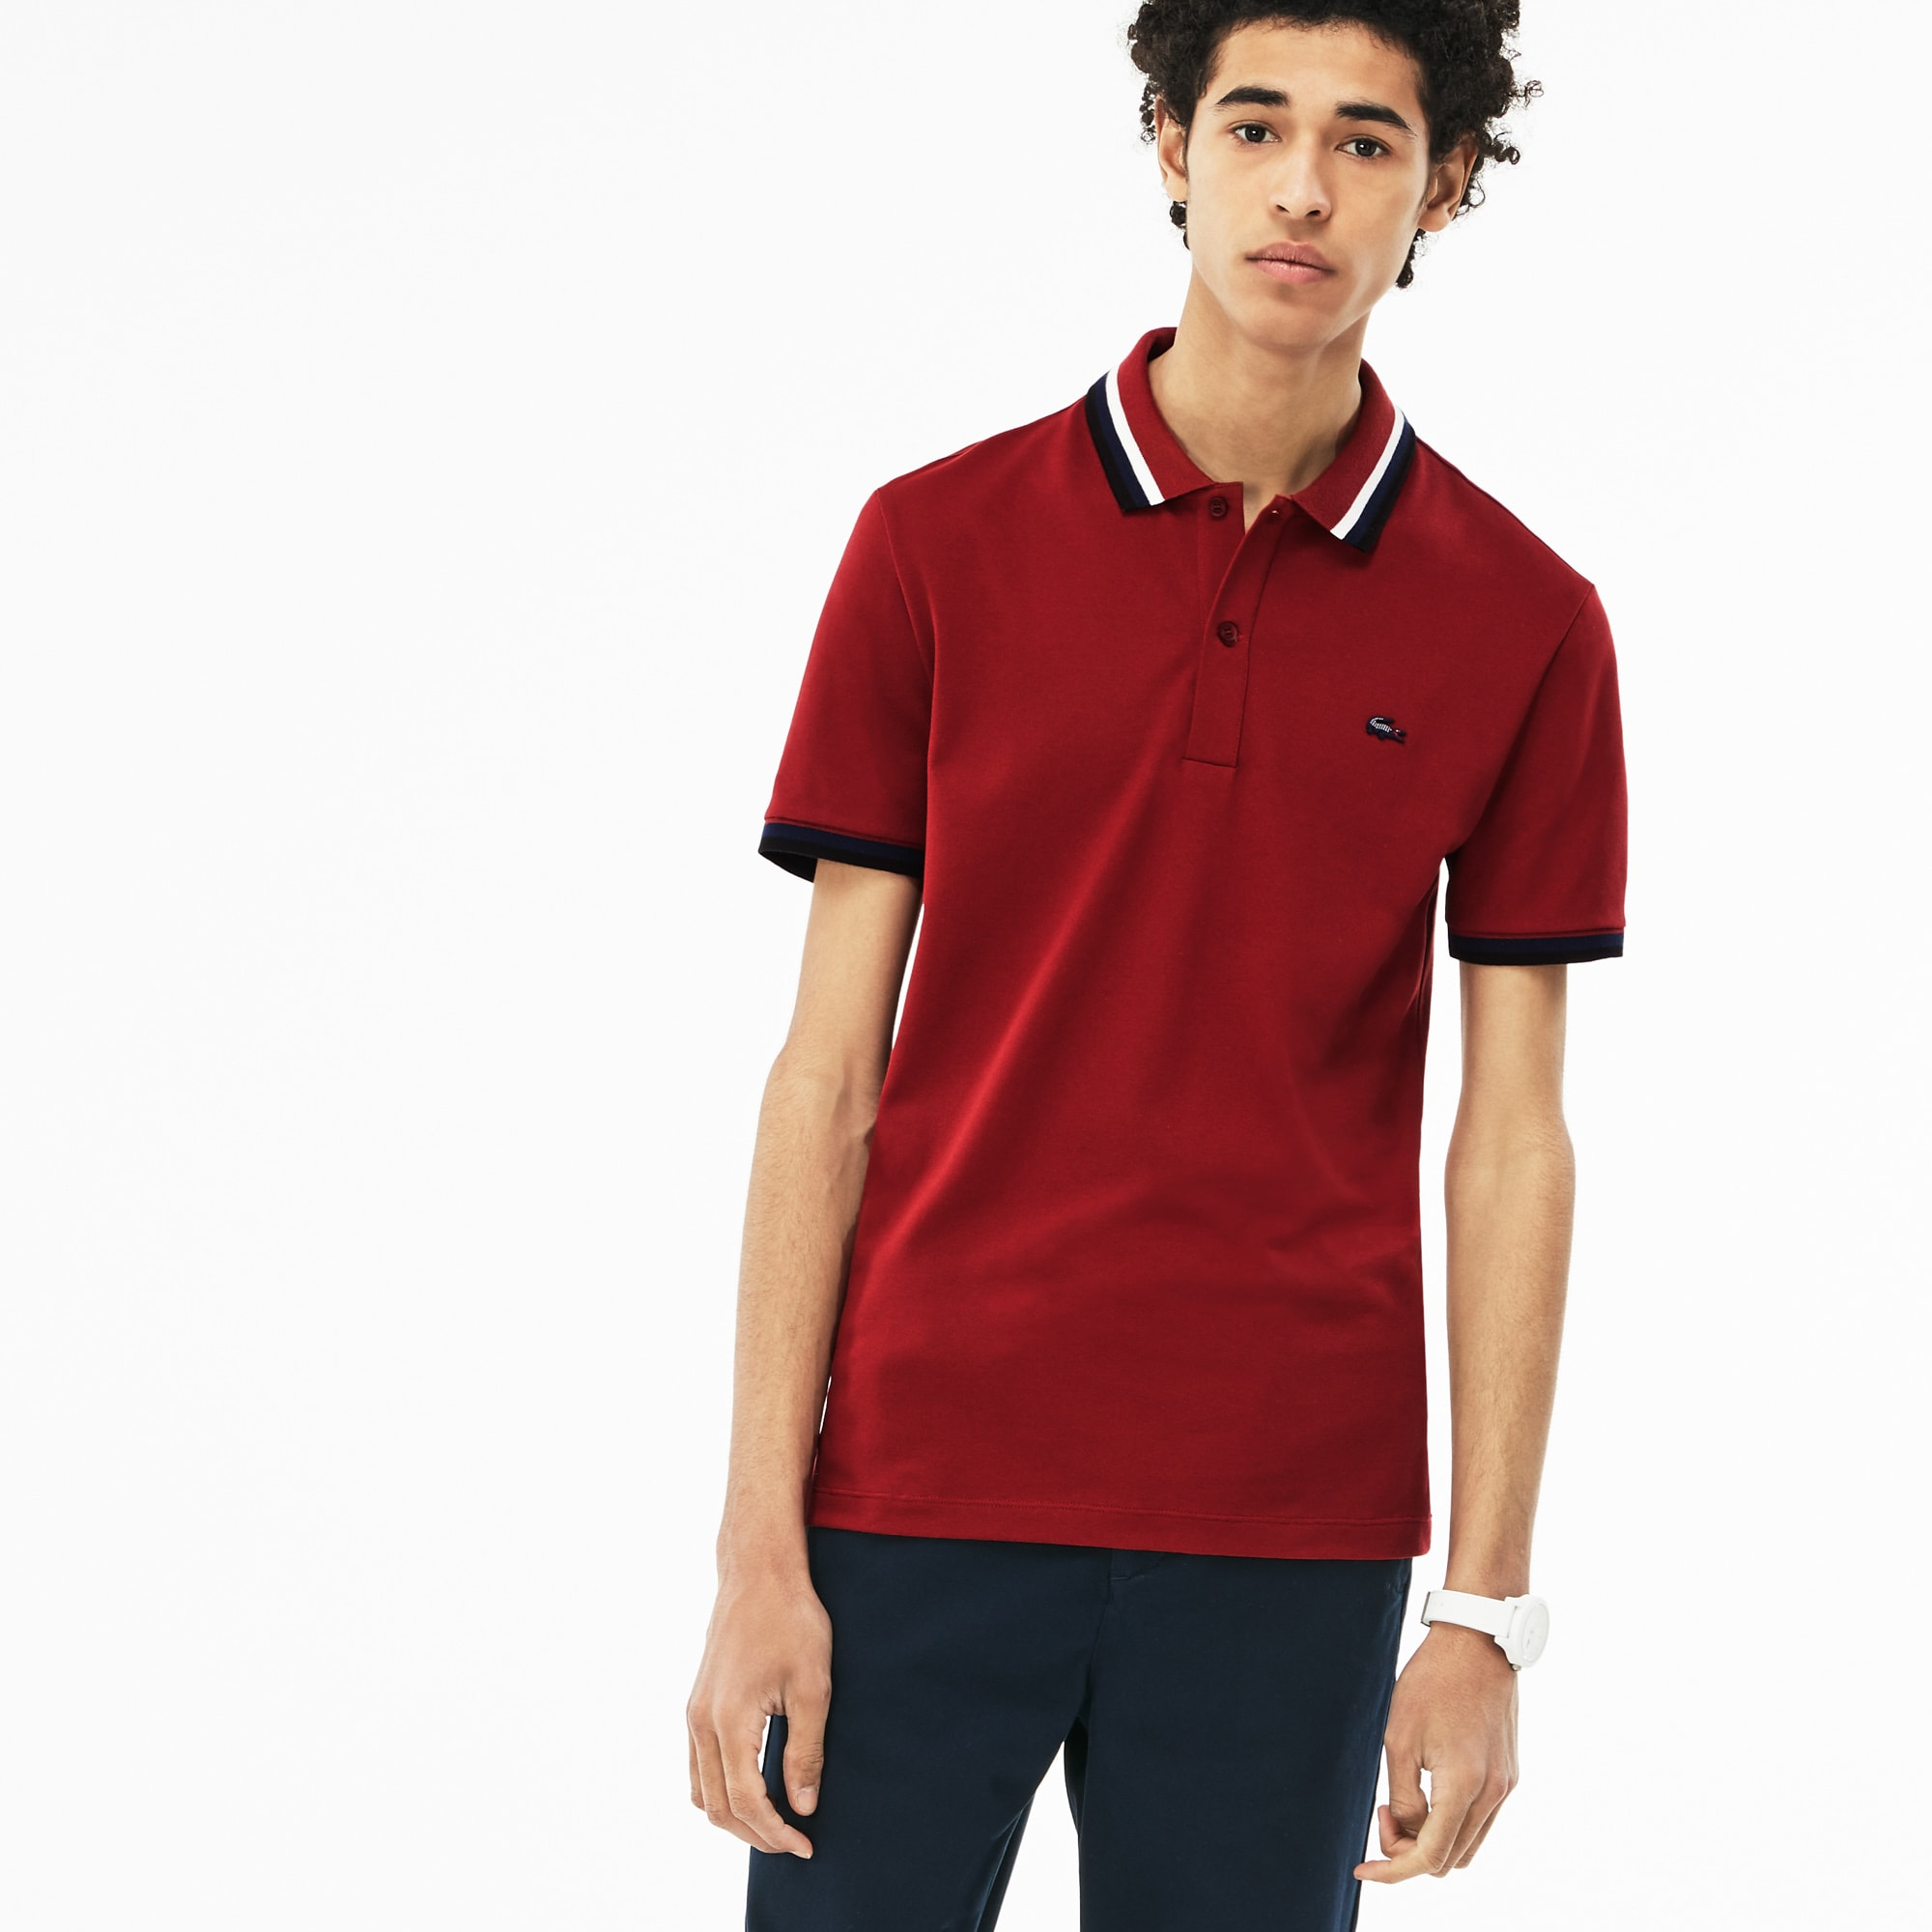 b56ecf6e8c9 Men s Lacoste Slim Fit Contrast Accents Stretch Pima Piqué Polo ...